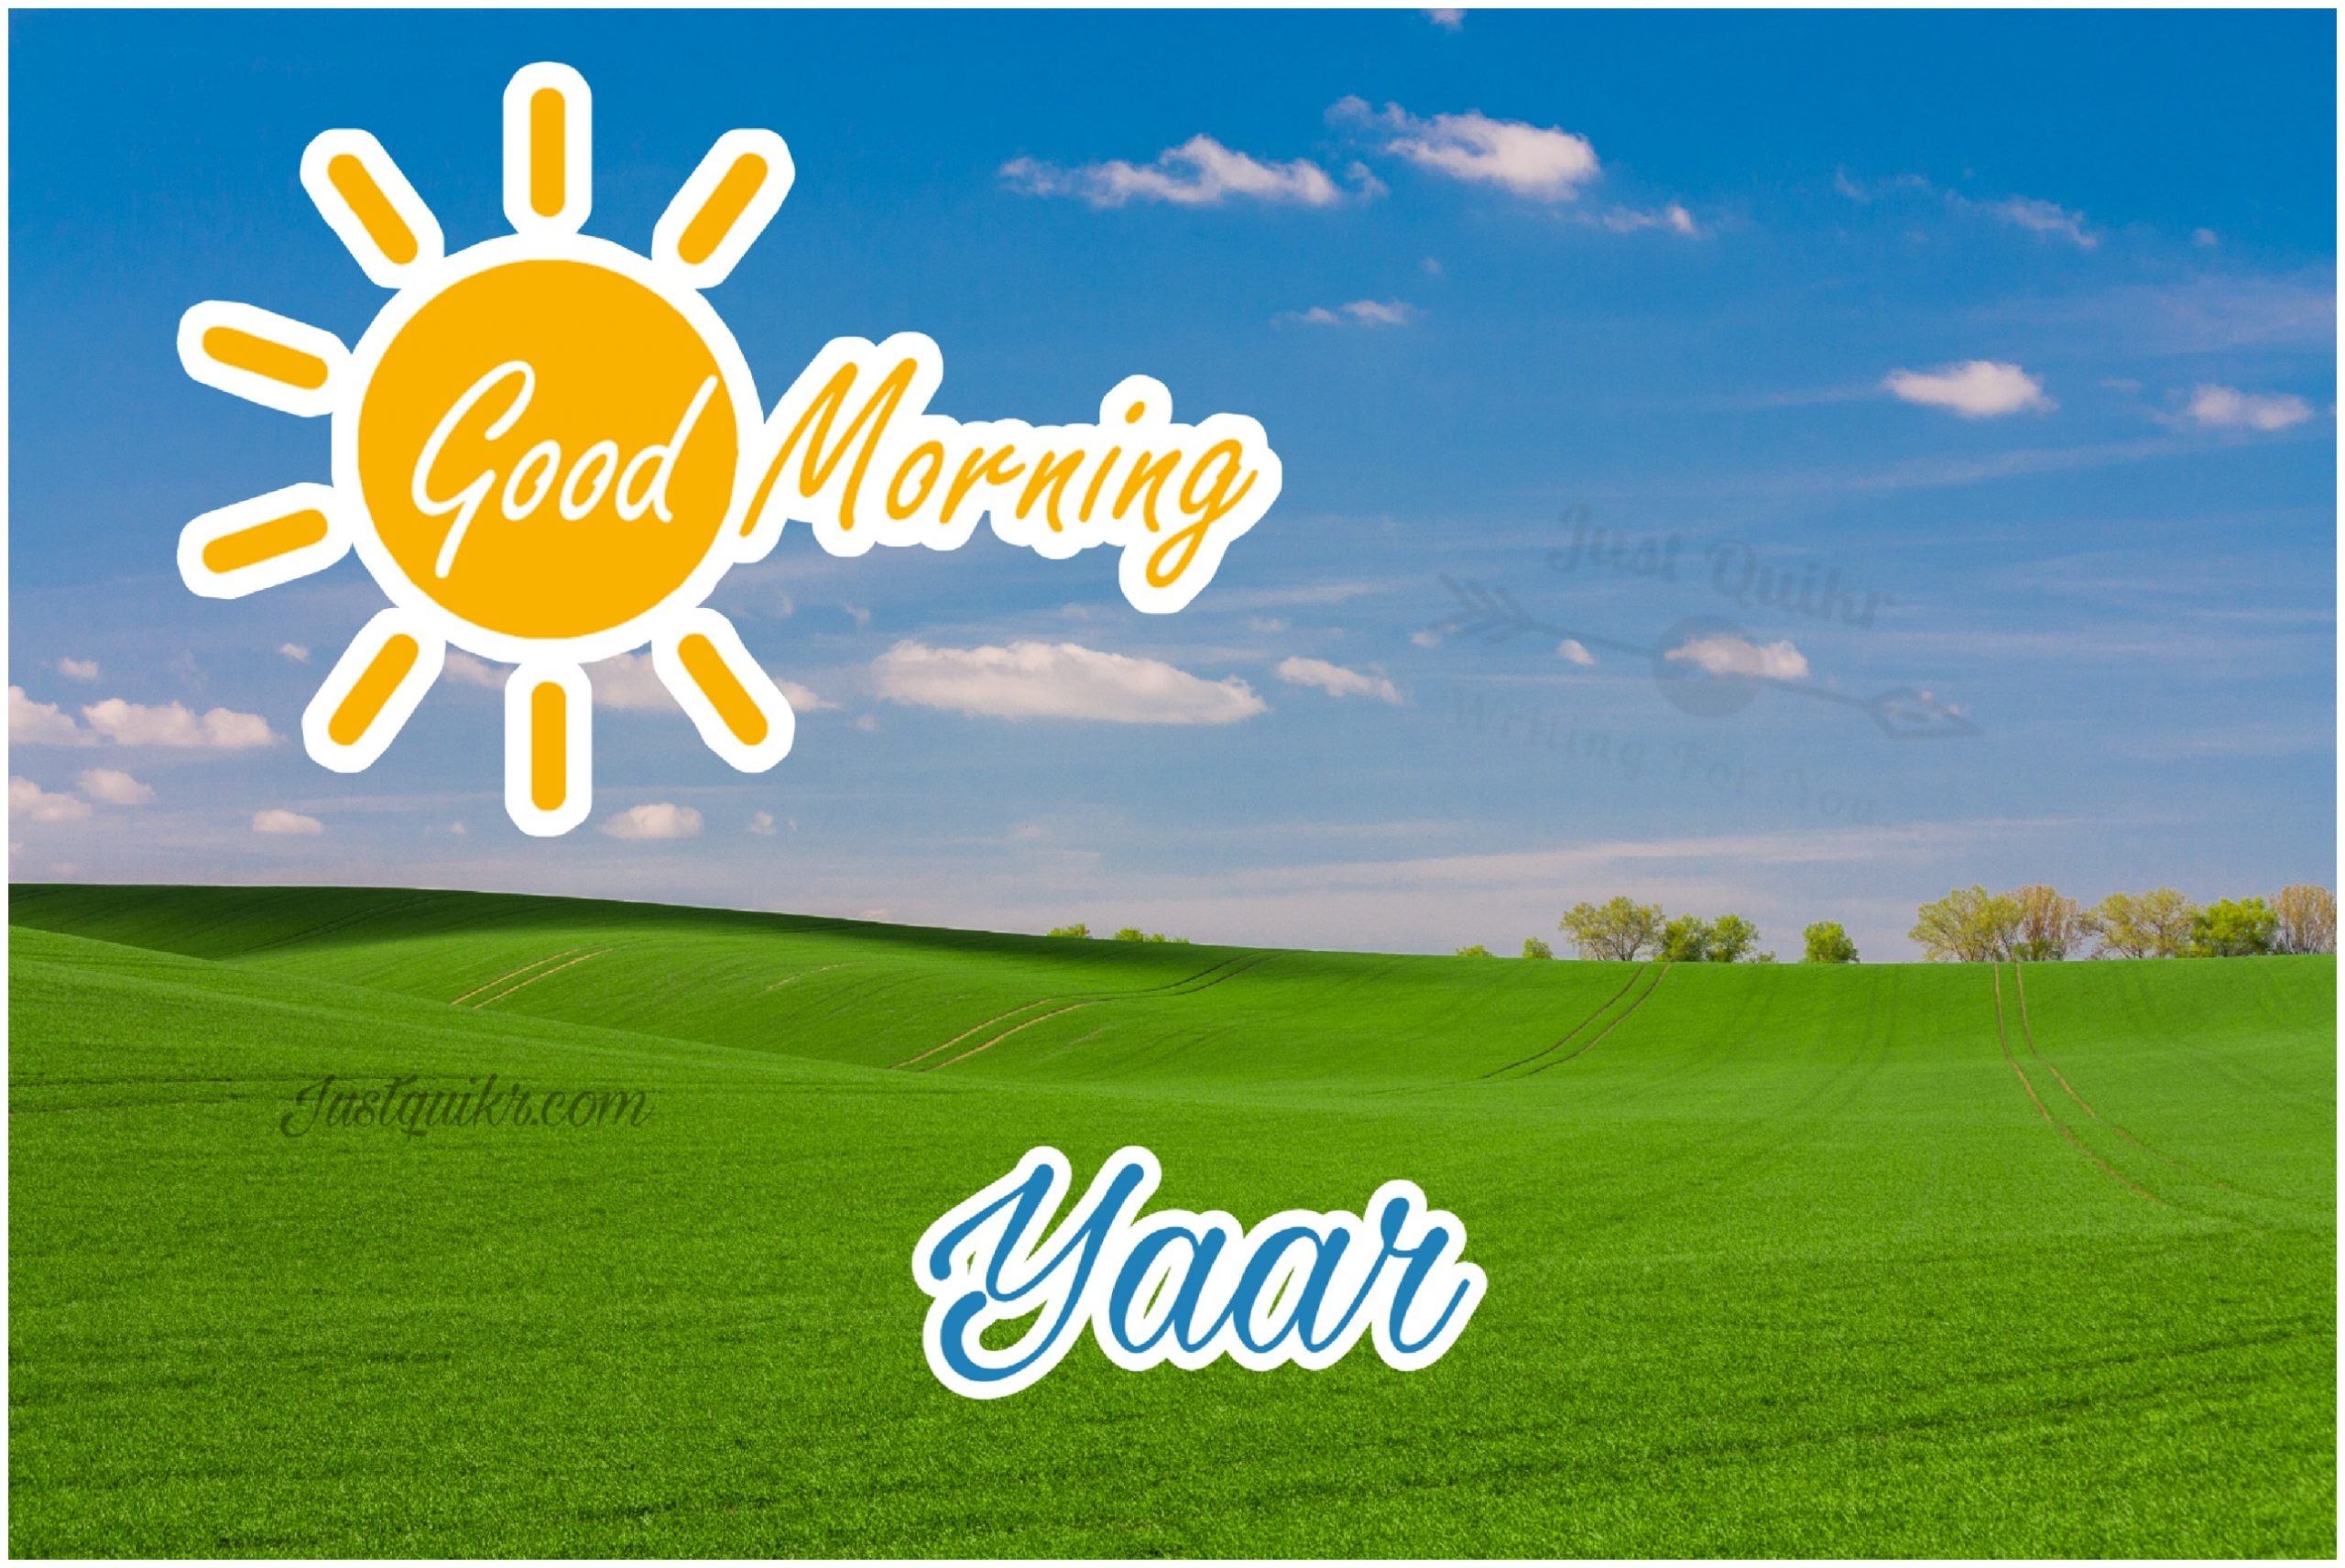 Good Morning Yaar Messages Wishes Shayari SMS HD Pics Images Photo Wallpaper for Whatsapp Instagram And Facebook